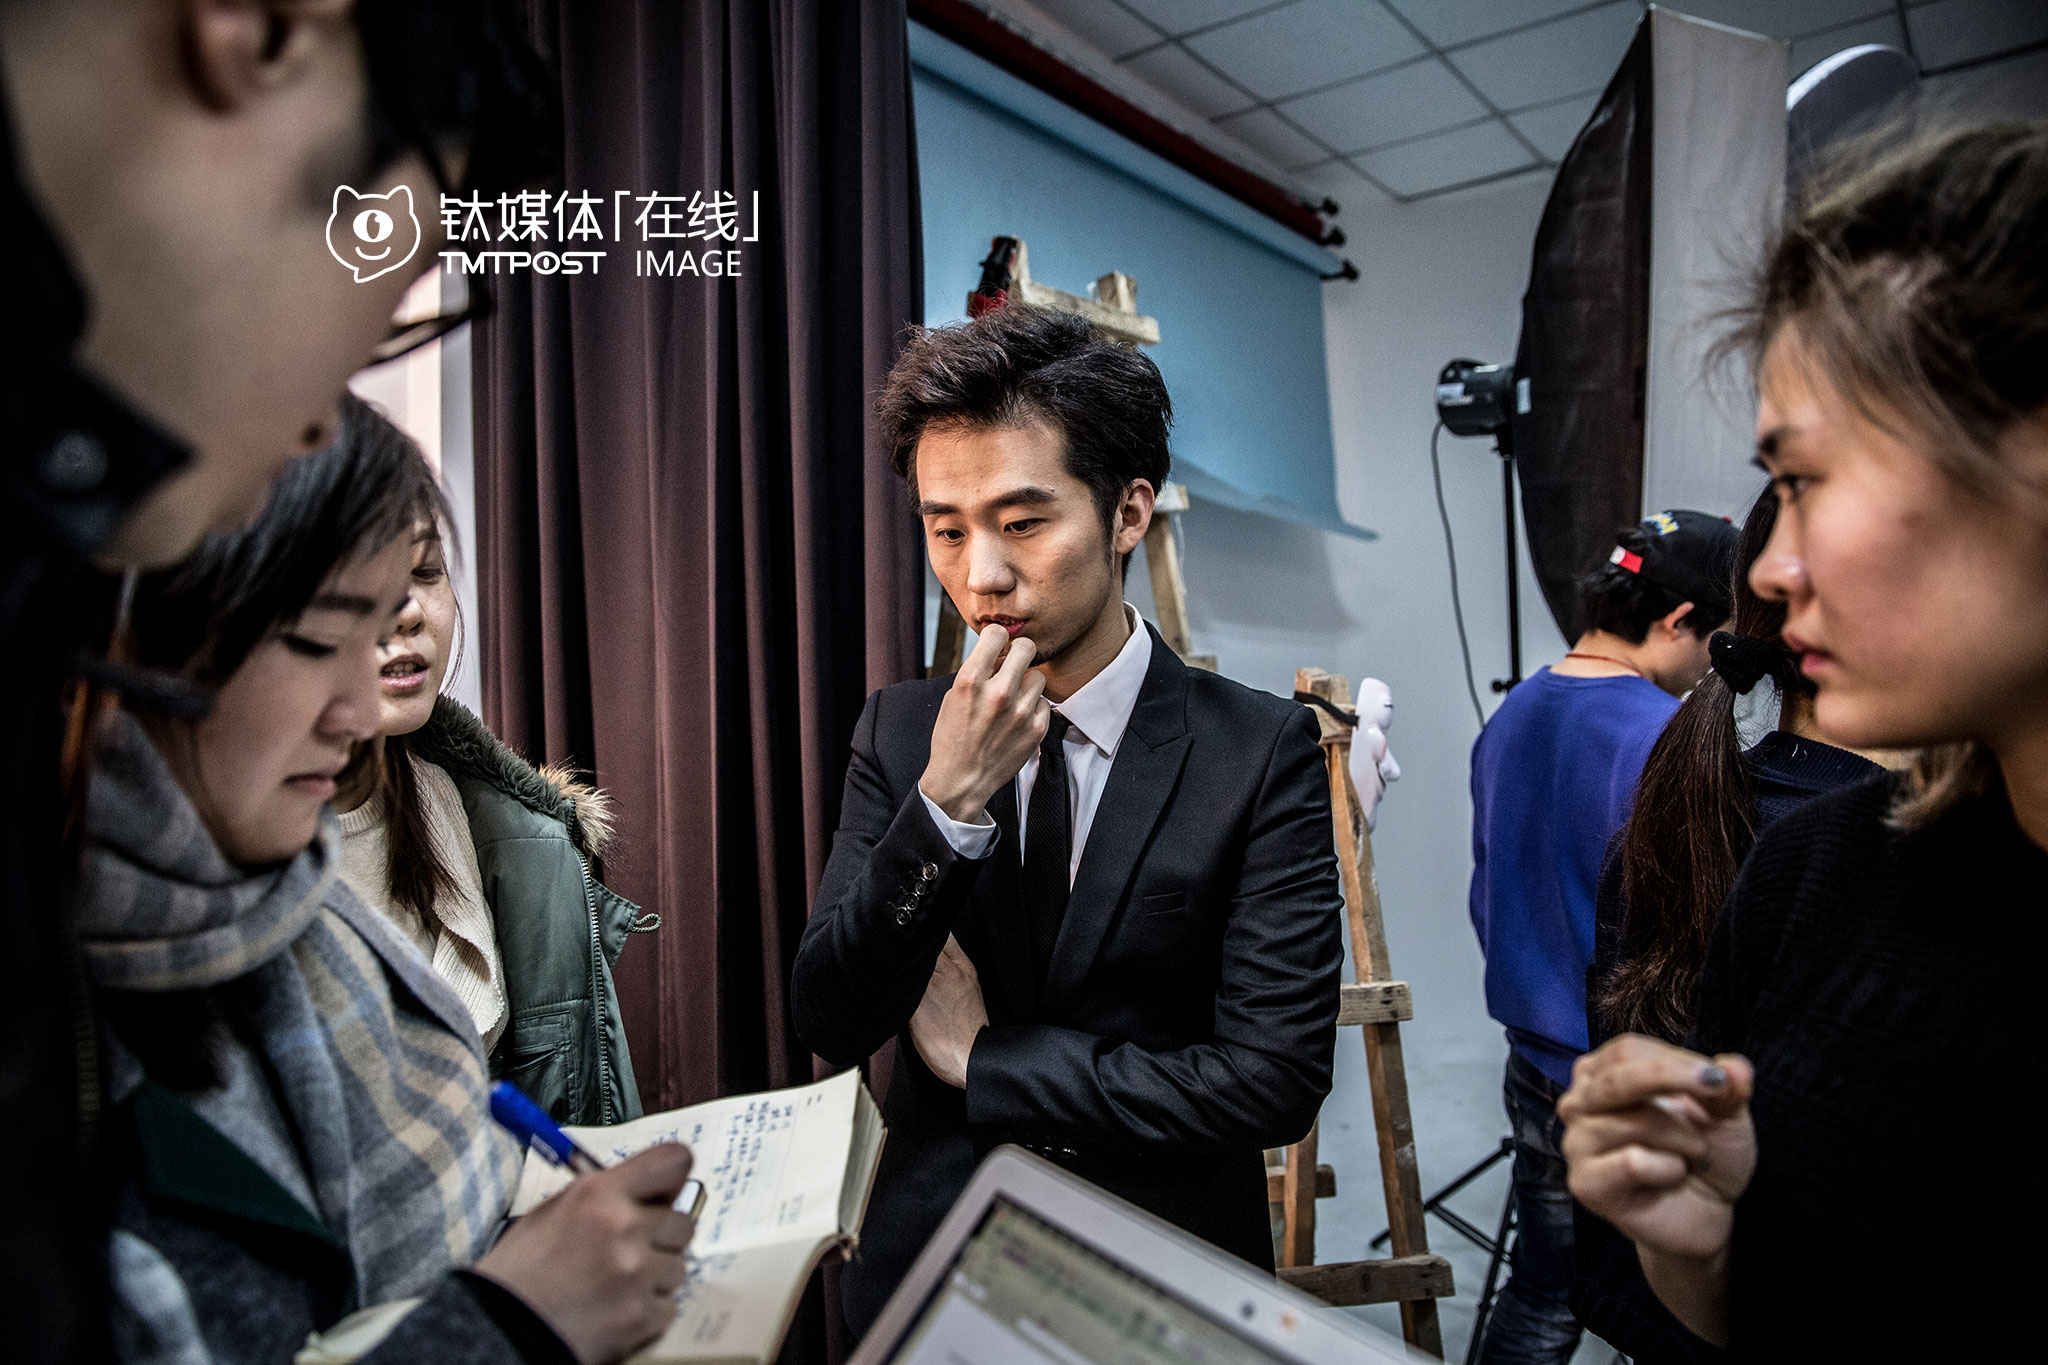 When getting their makeup done, the sales team and the director, Liu Xunzimo, were discussing about the possible offline merchandise for season two.